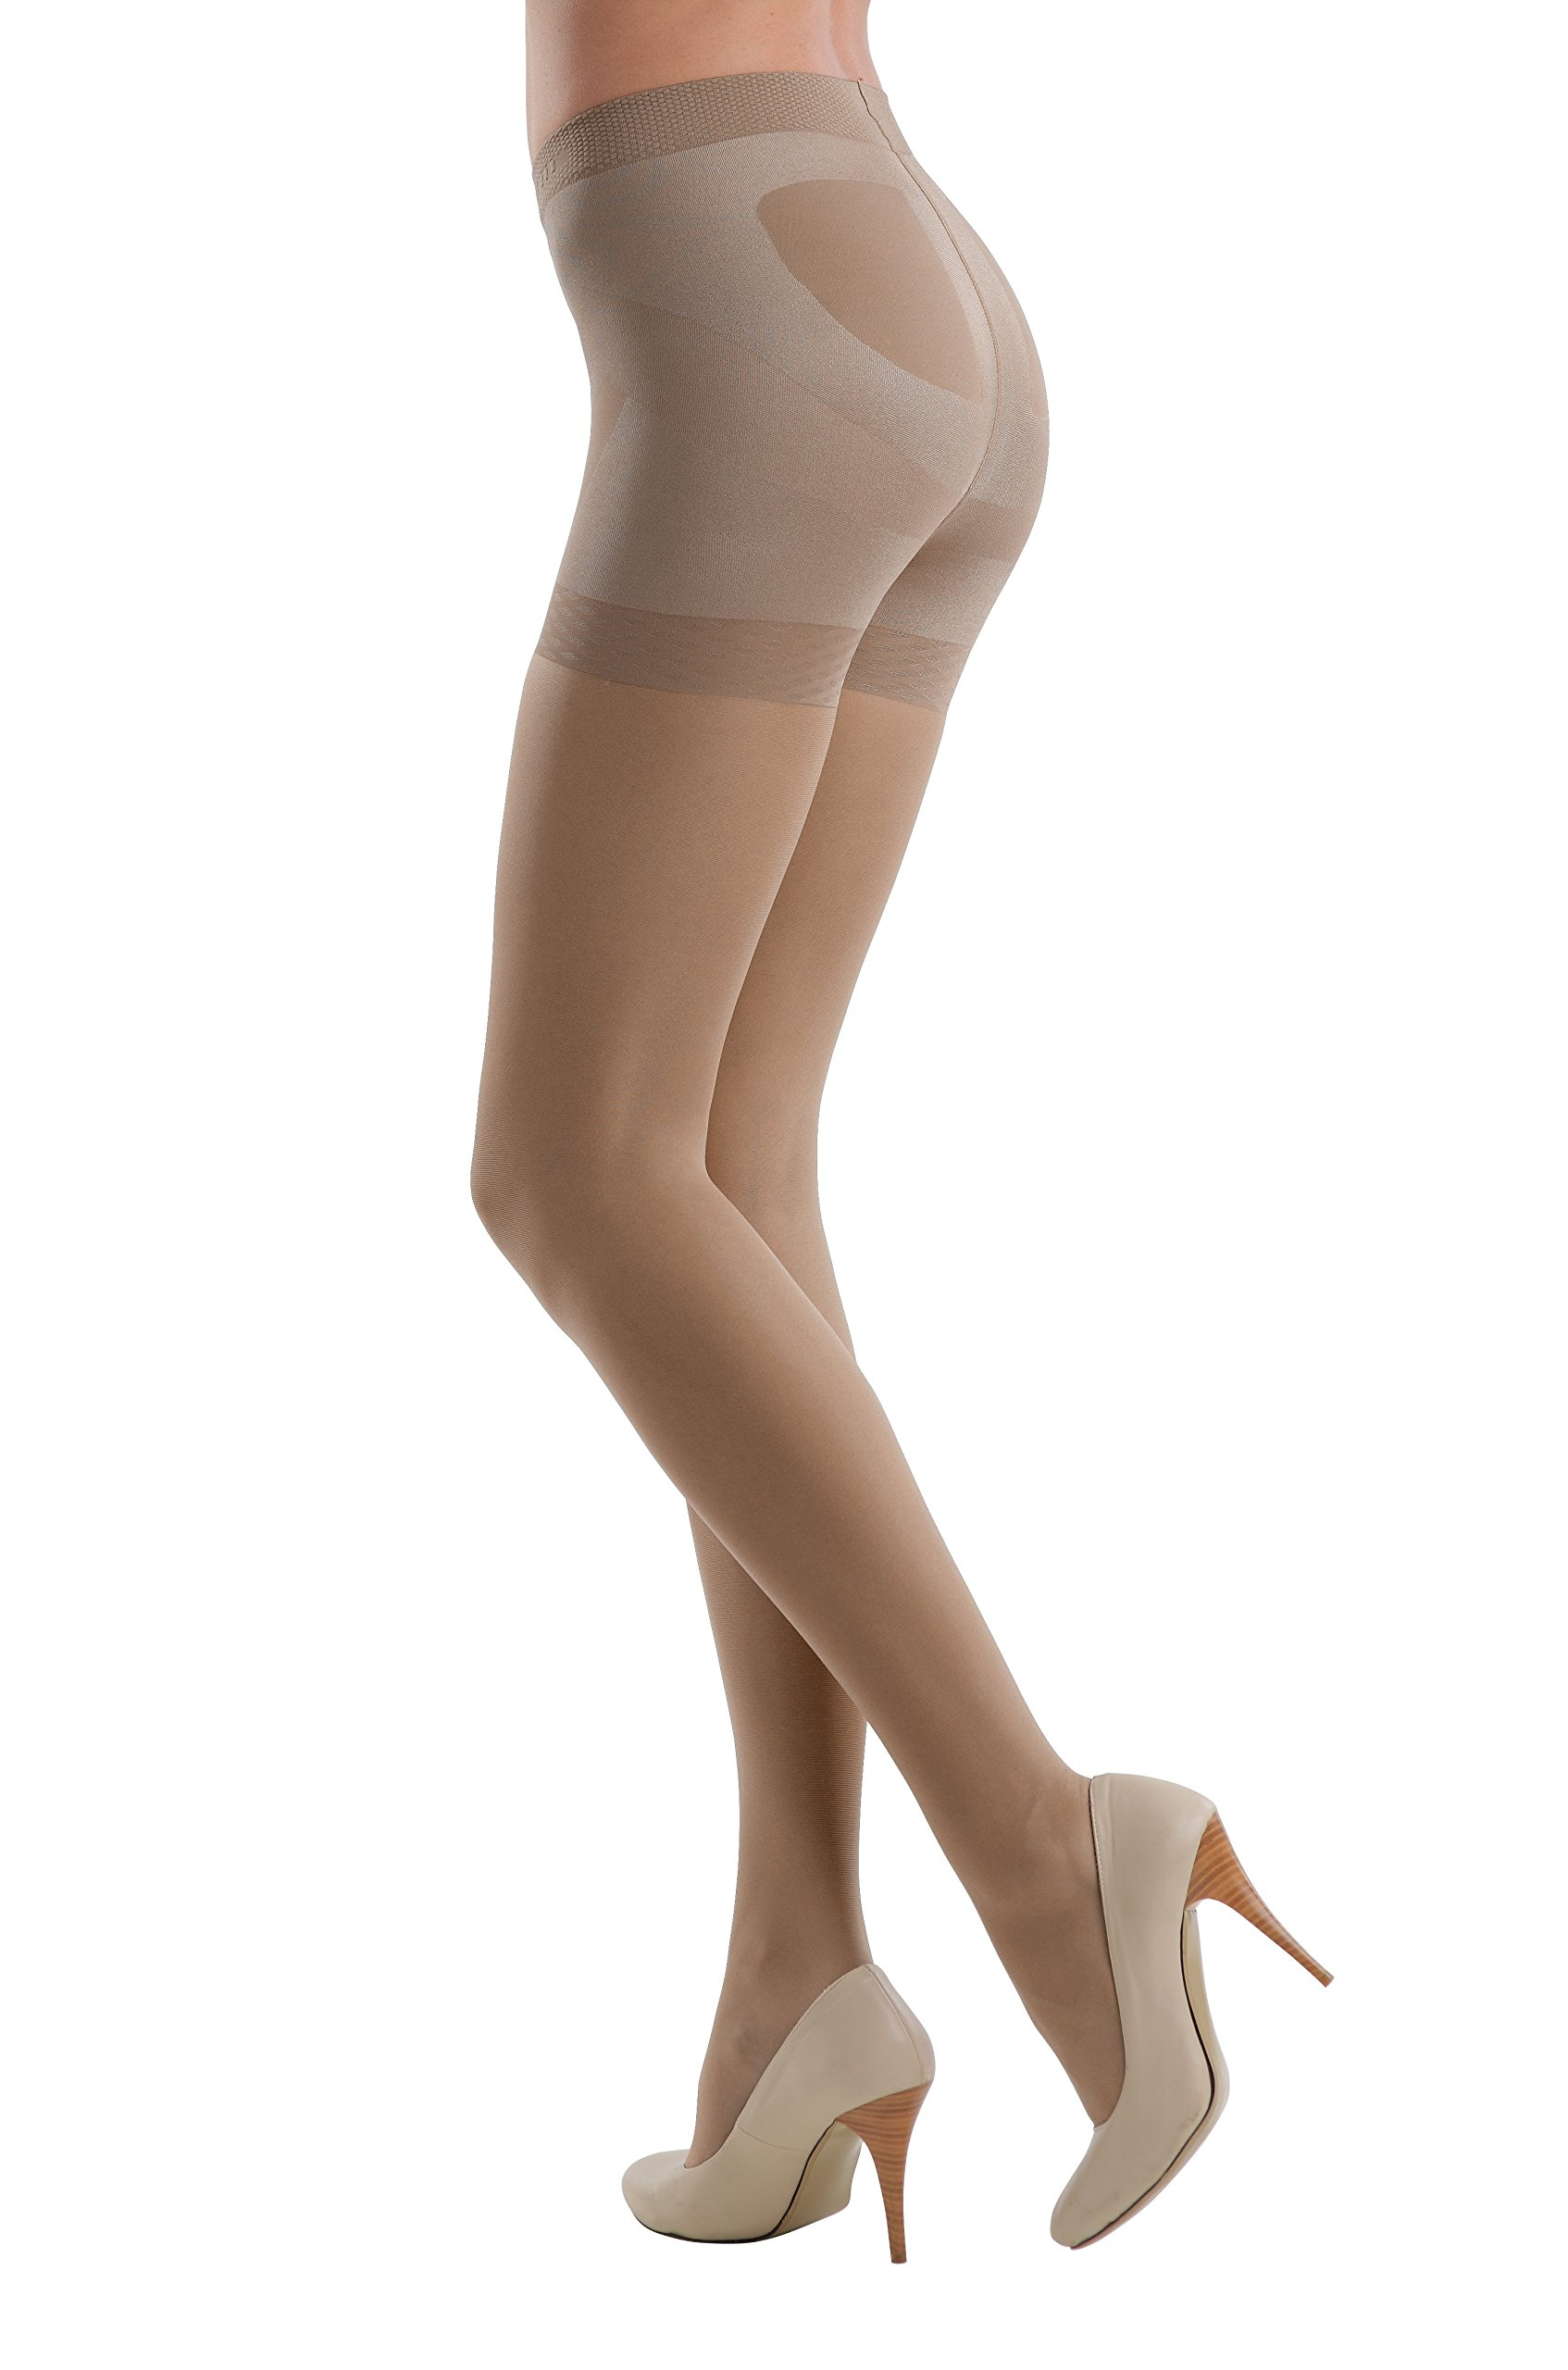 Conte America Top Quality Pantyhose Control Top with 7 Shaping Belts X-PRESS 20 den